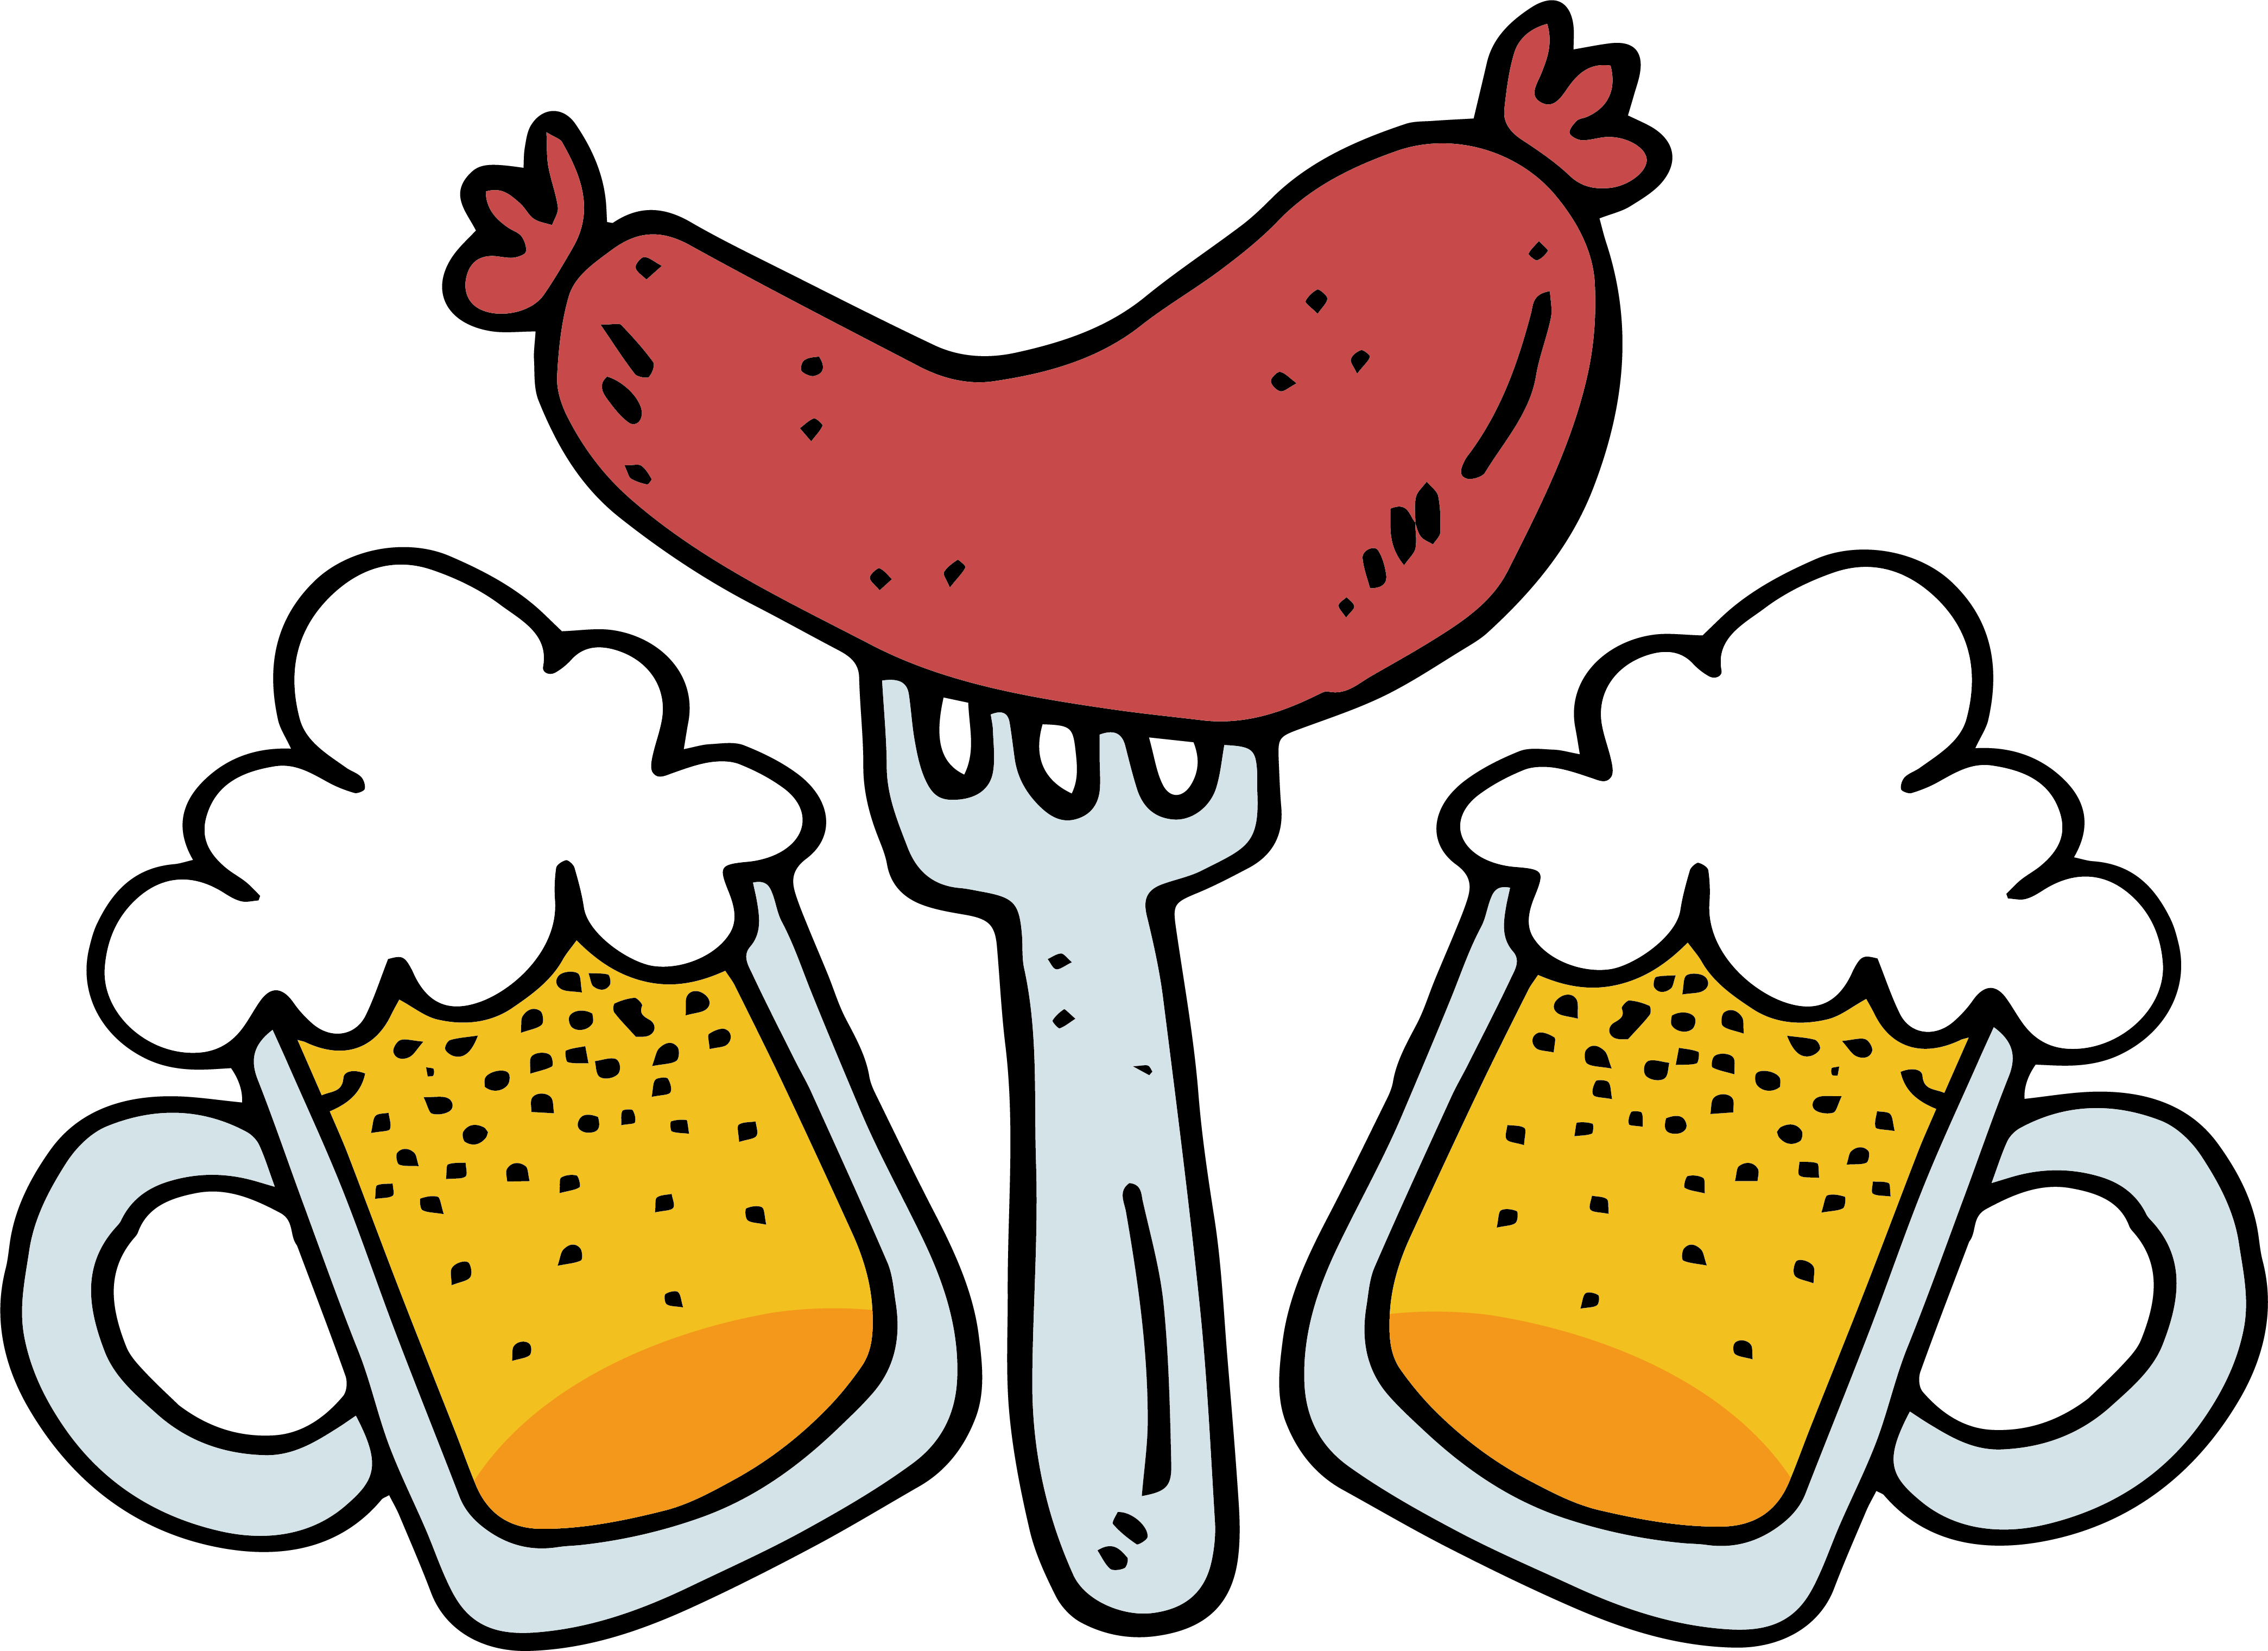 Roasting hot dog clipart graphic royalty free Sausage Beer Oktoberfest Bratwurst Hot dog - Beer sausage 4178*3041 ... graphic royalty free